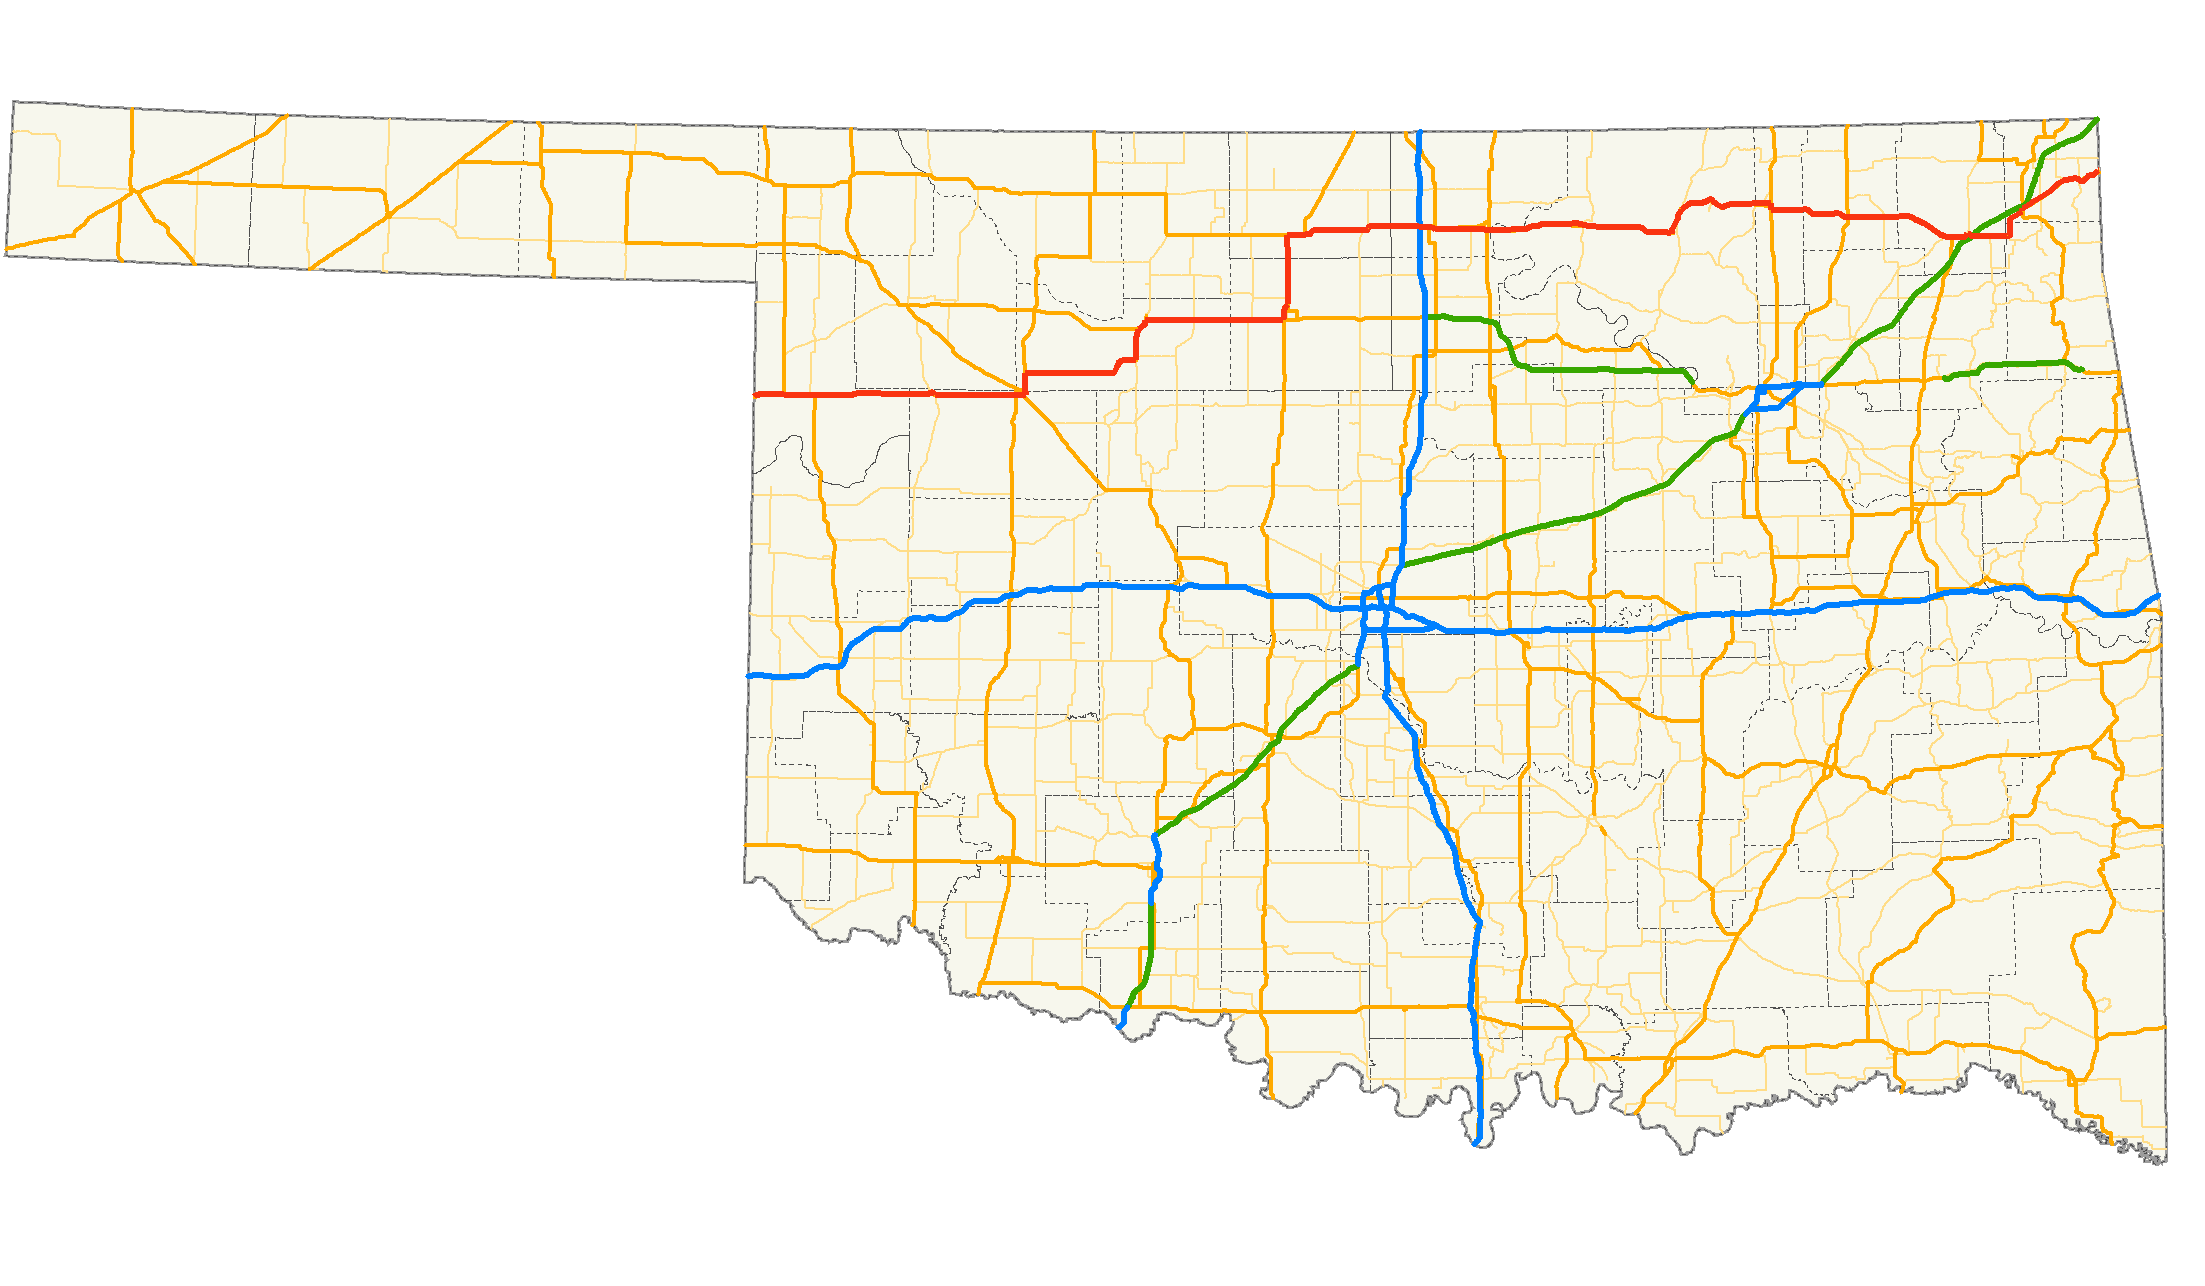 FileUS Oklahoma Mappng Wikimedia Commons - Oklahoma map us